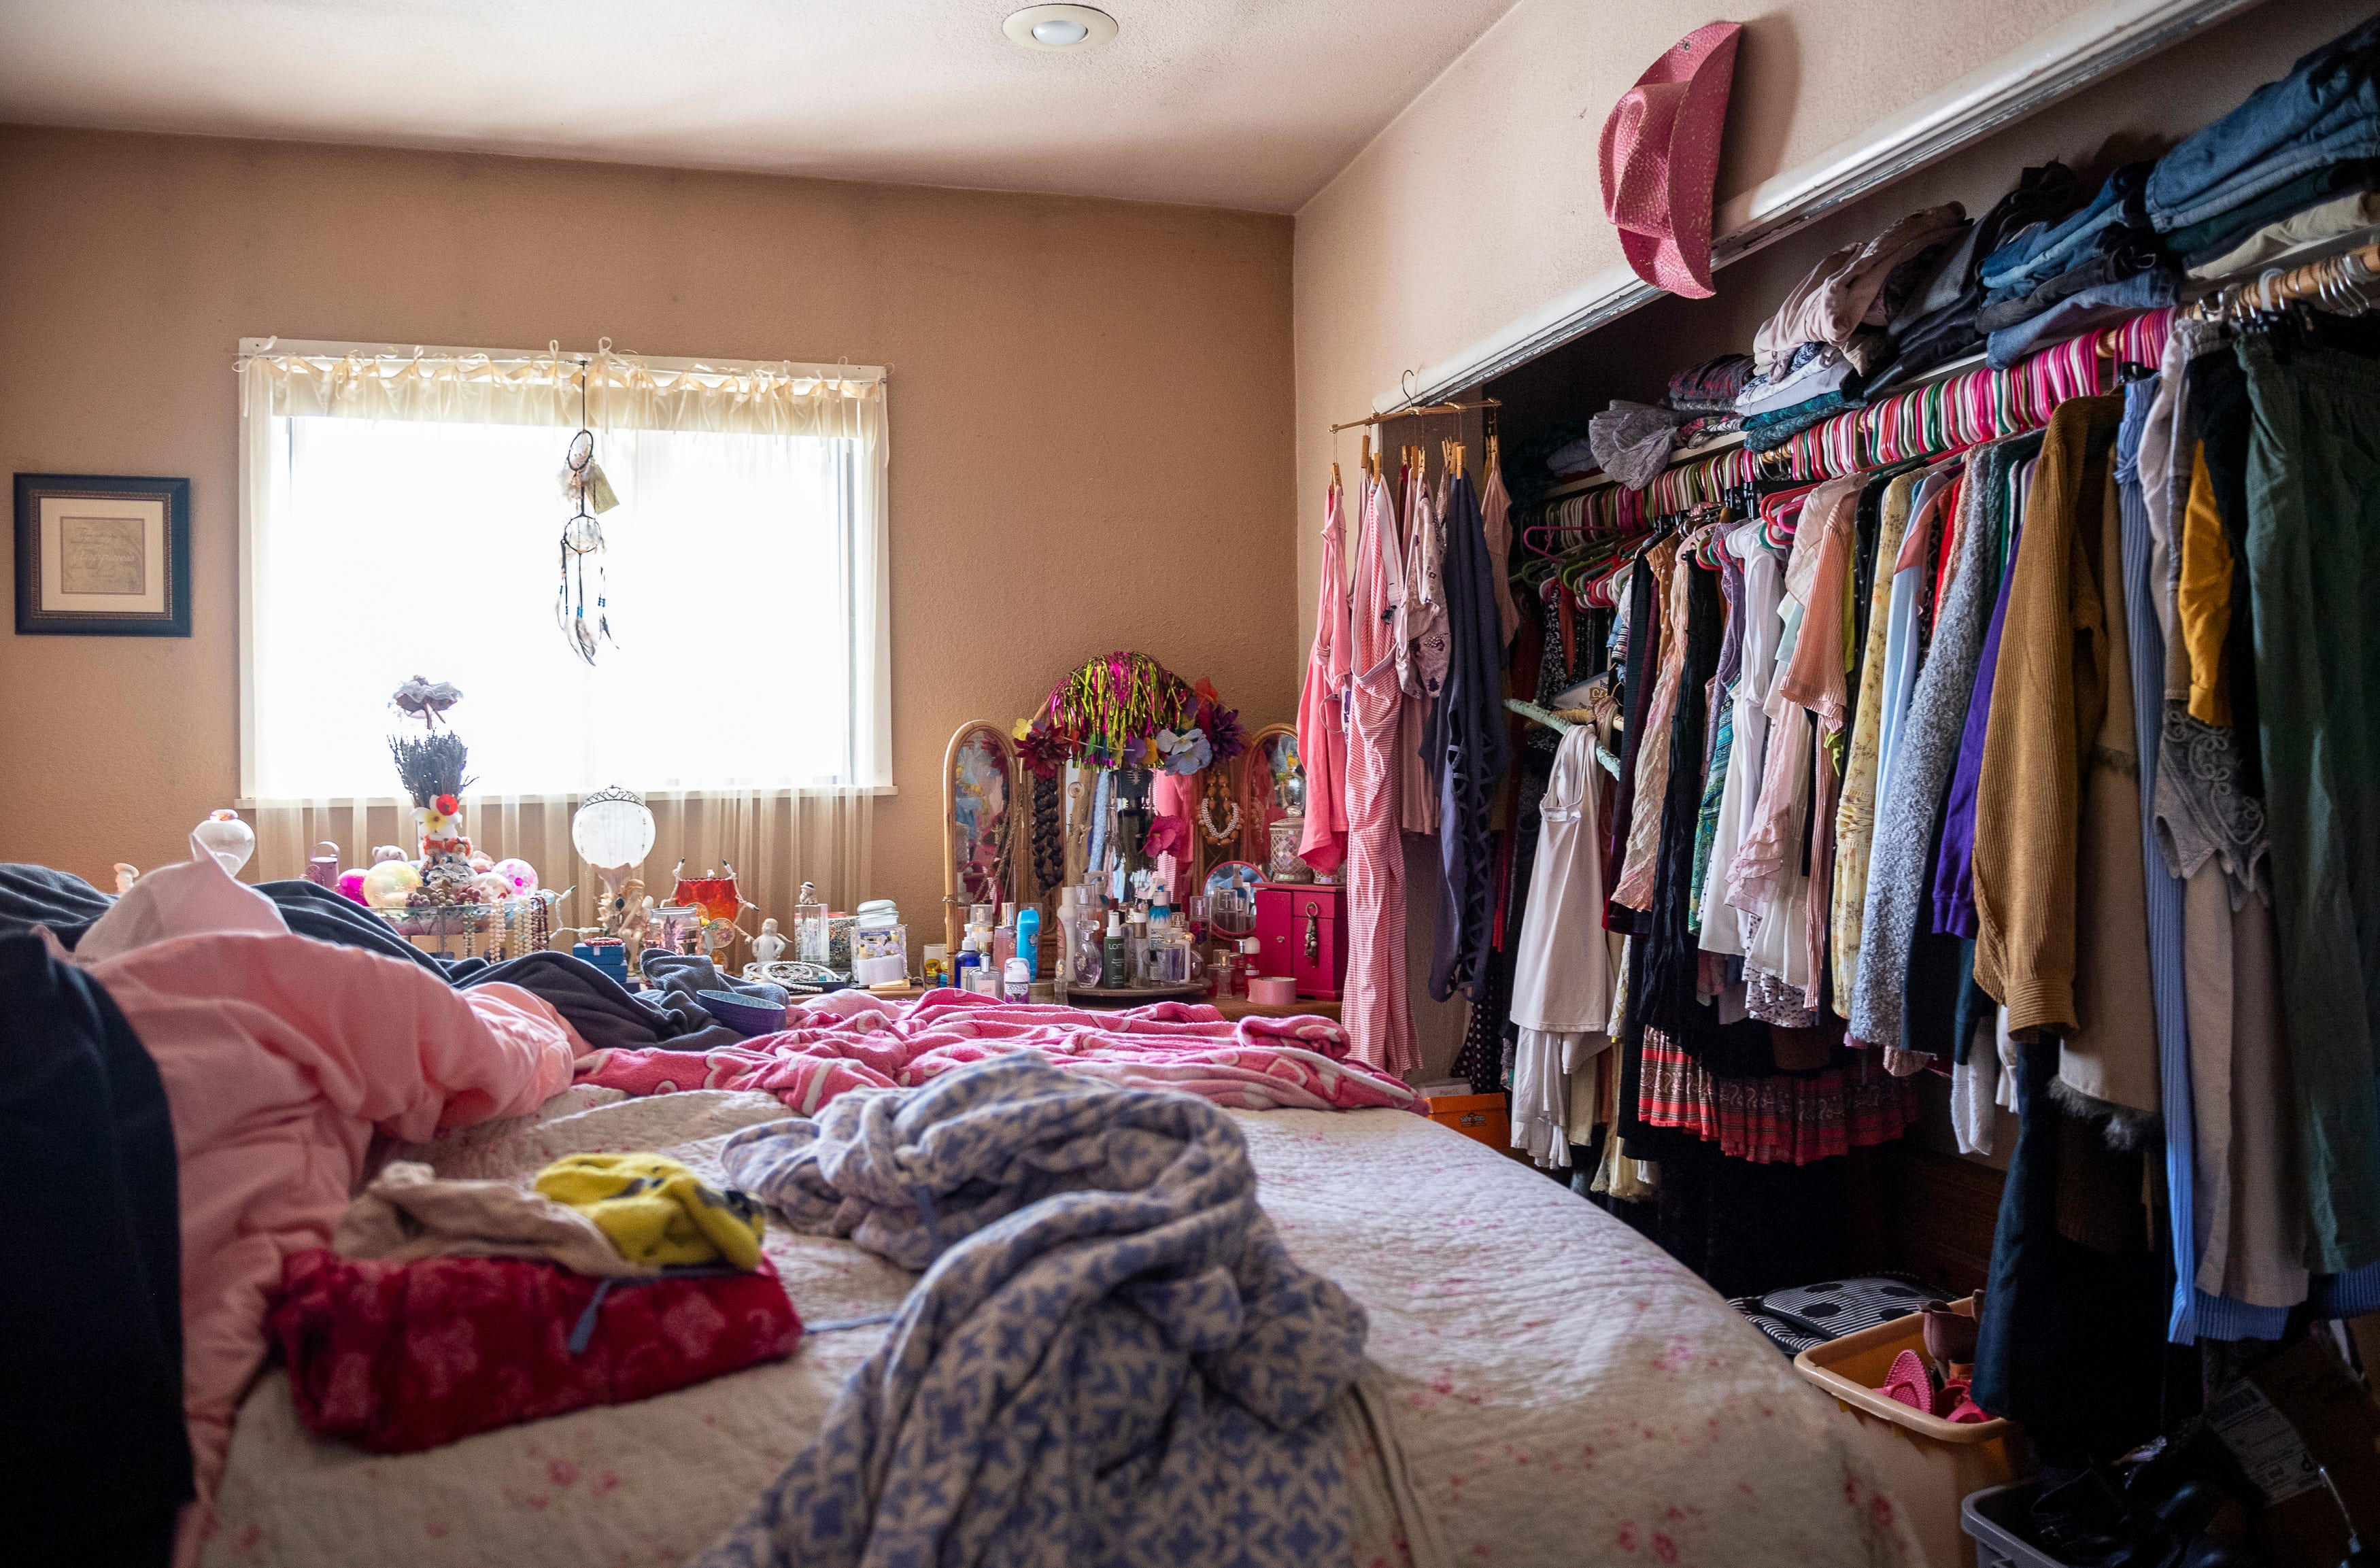 Susan Brzovich's room is filled with clothes, blankets, and other accessories in Prunedale, Calif., on Friday, Nov. 27, 2020.